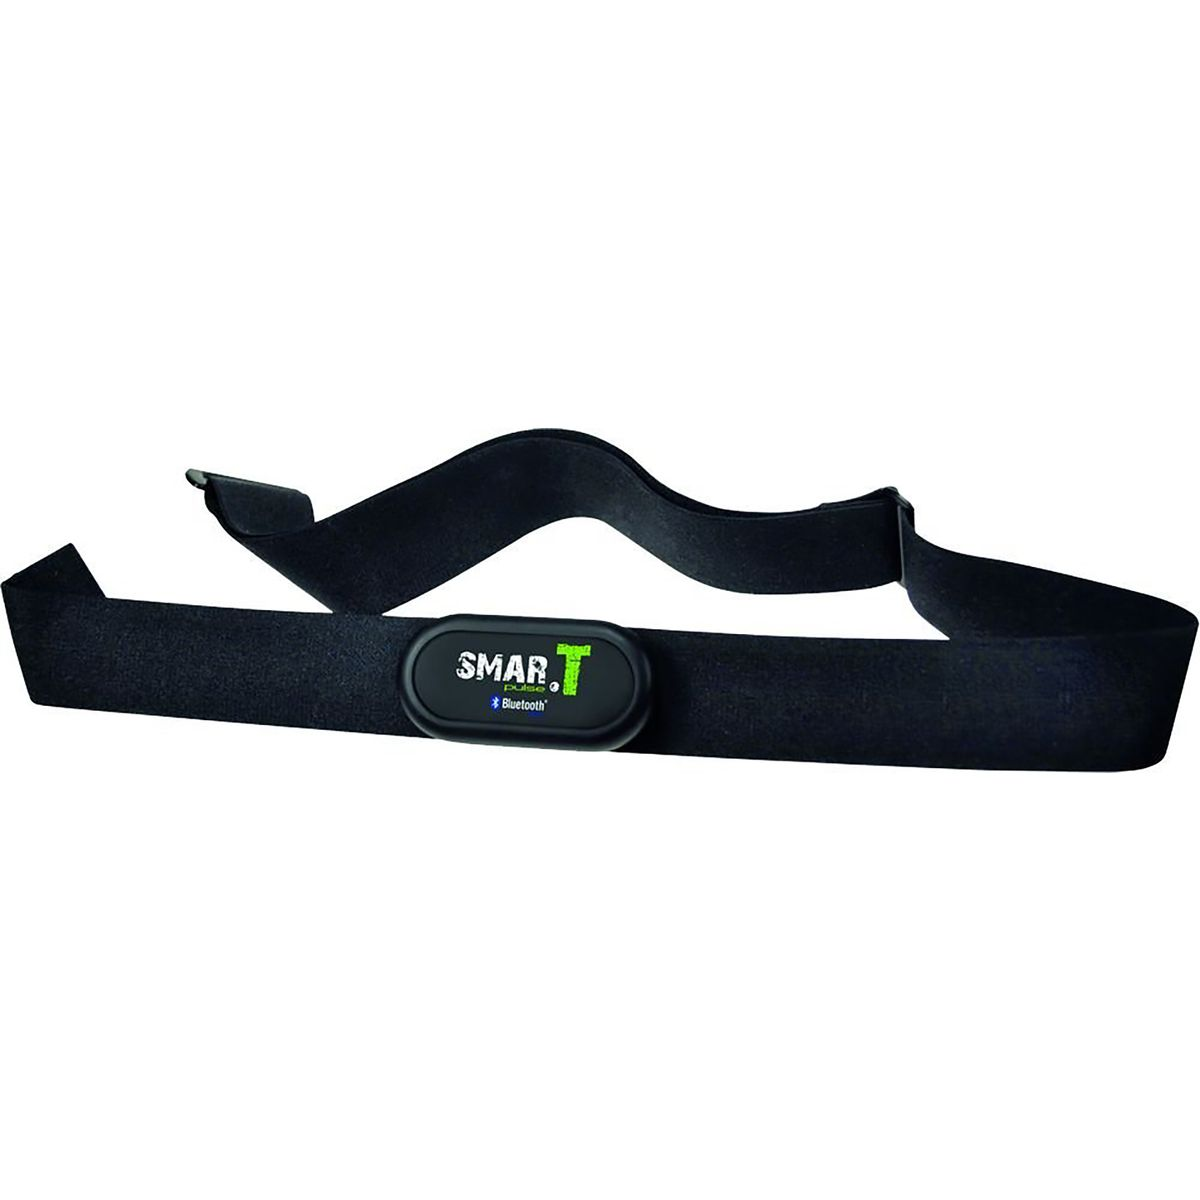 Tahuna connect Bluetooth 4.0 heart rate sensor with chest strap